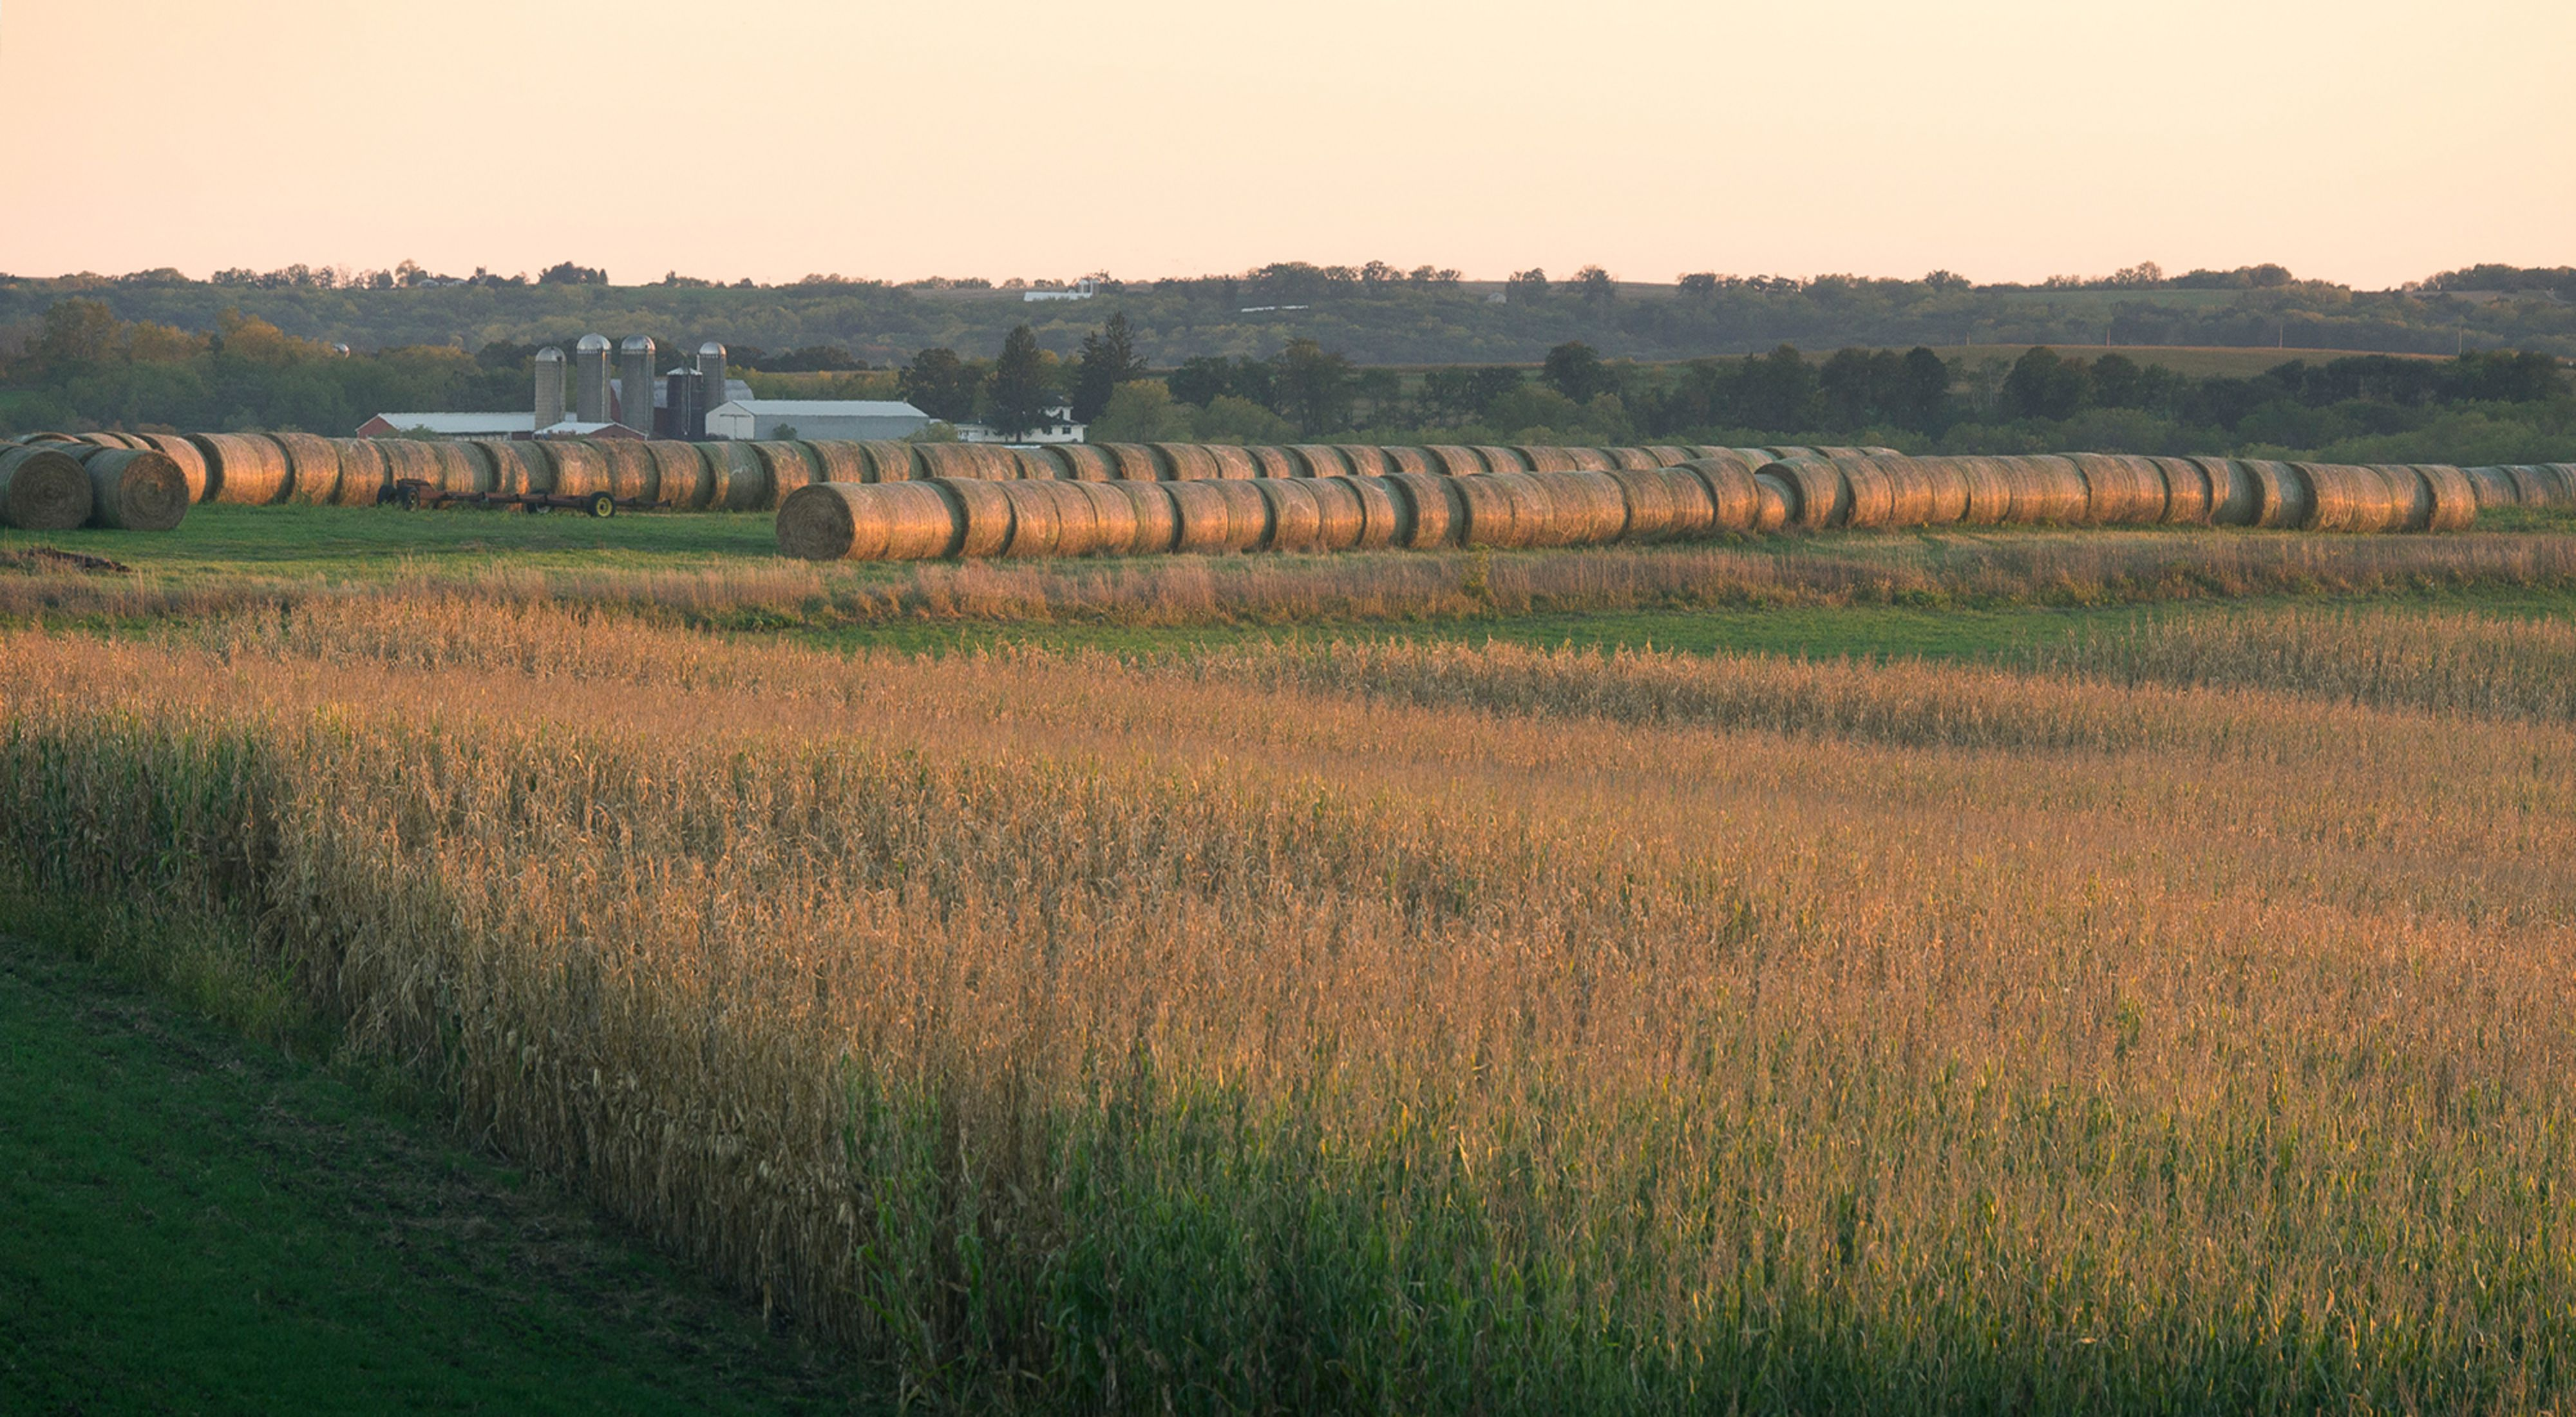 Hay bales in the distance lined up next to a wheat field.